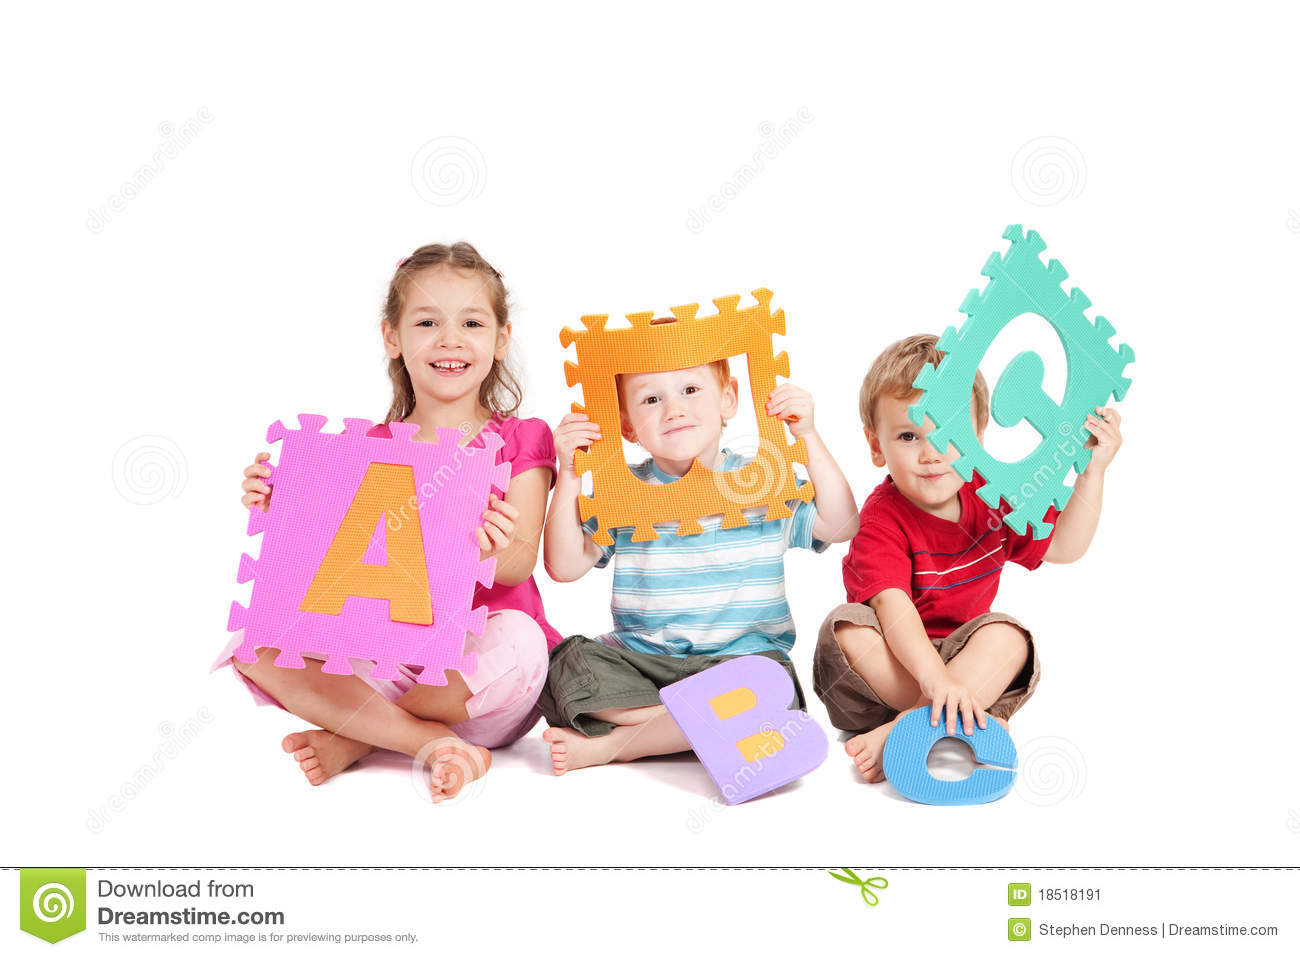 Worksheet Learning With Kids children learning fun kids alphabet abc letters stock image letters